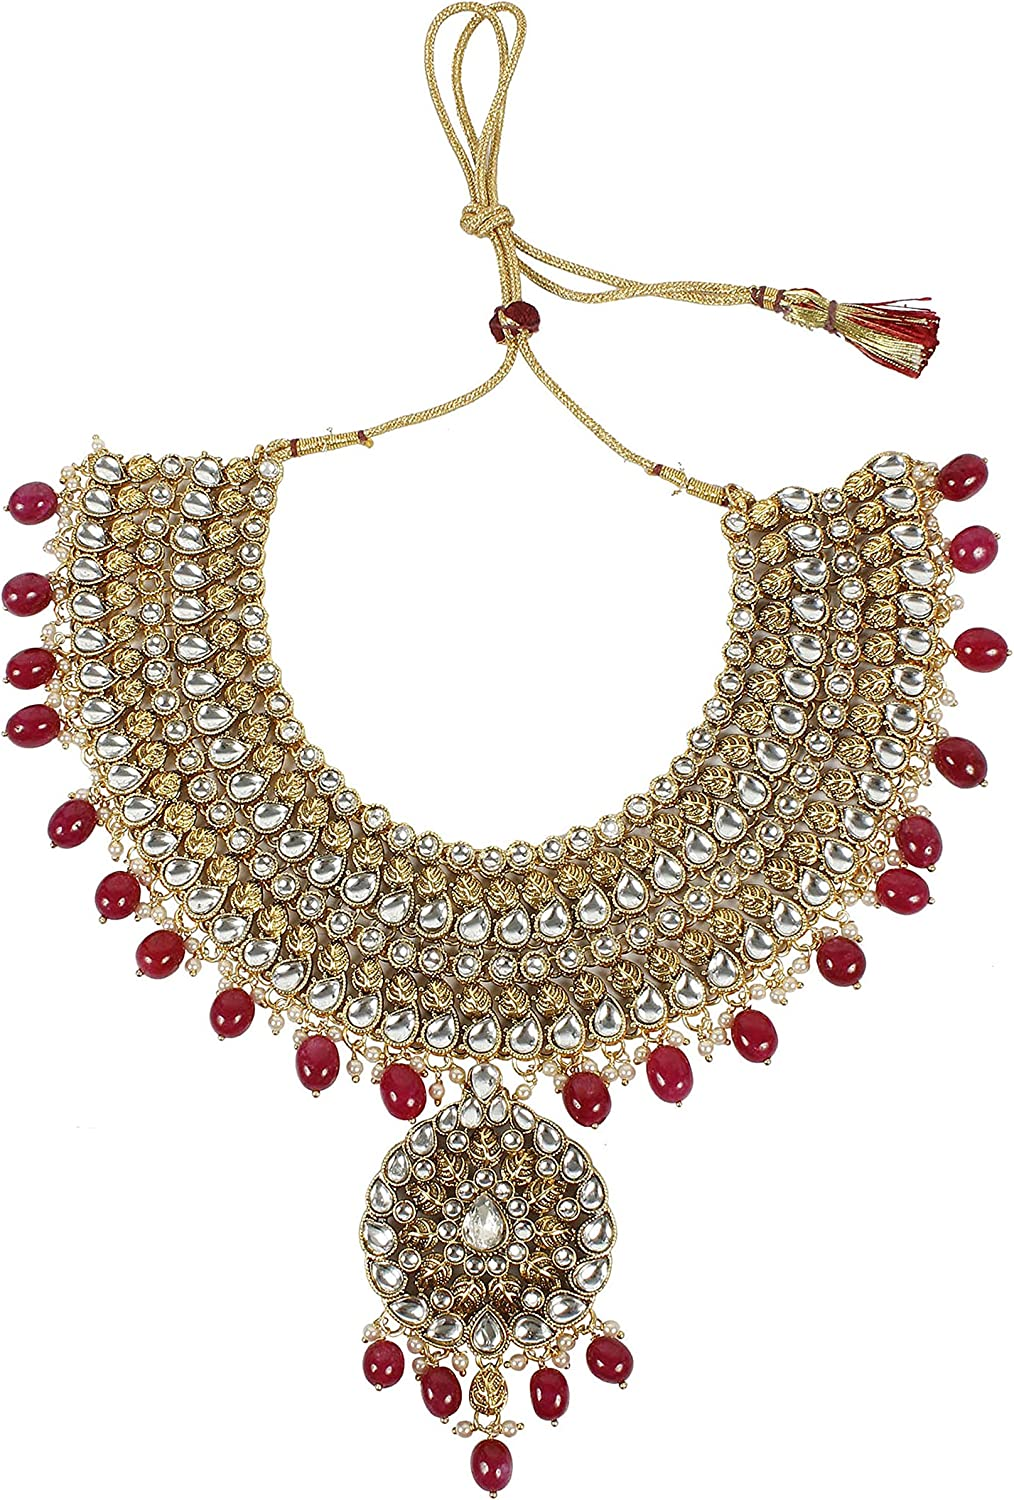 5170 Ruby MUCH-MORE Traditional Indian Style Unique Polki Indian Necklace Earrings Bridal Set Jewelry